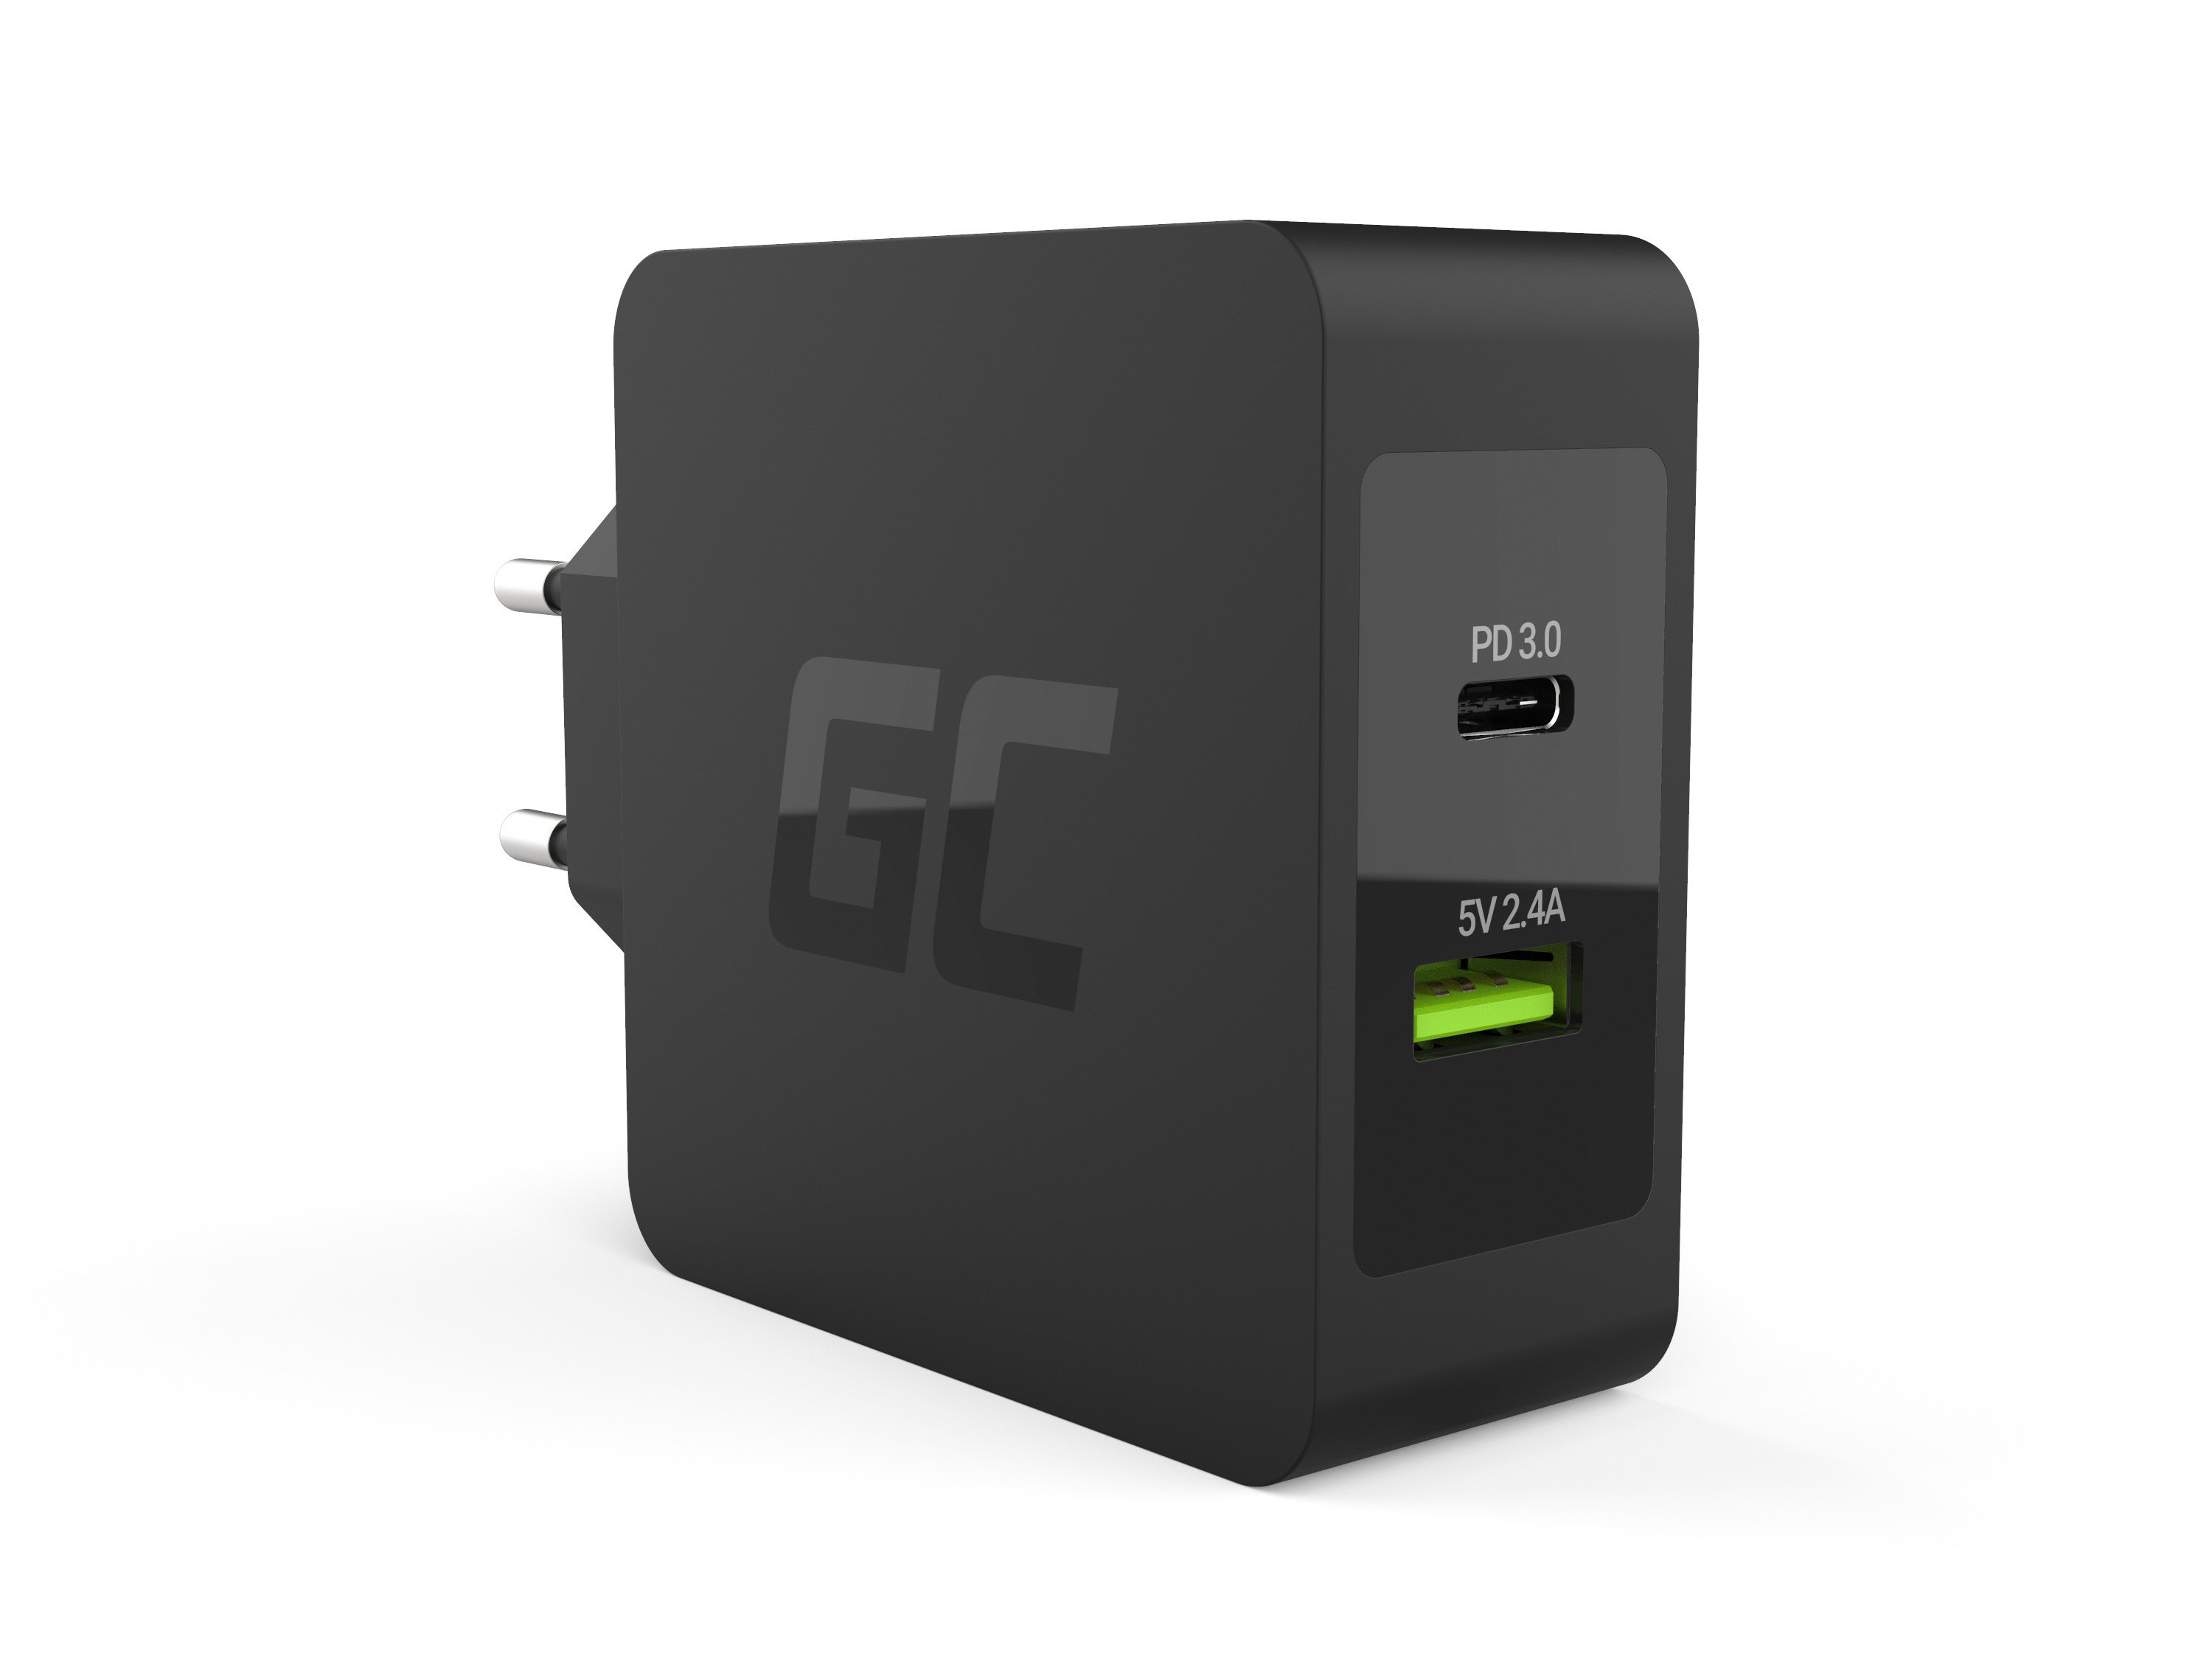 Green Cell Charger USB-C 45W PD with cable USB-C and extra USB port for Asus ZenBook, HP Spectre, HP Envy x2 and others